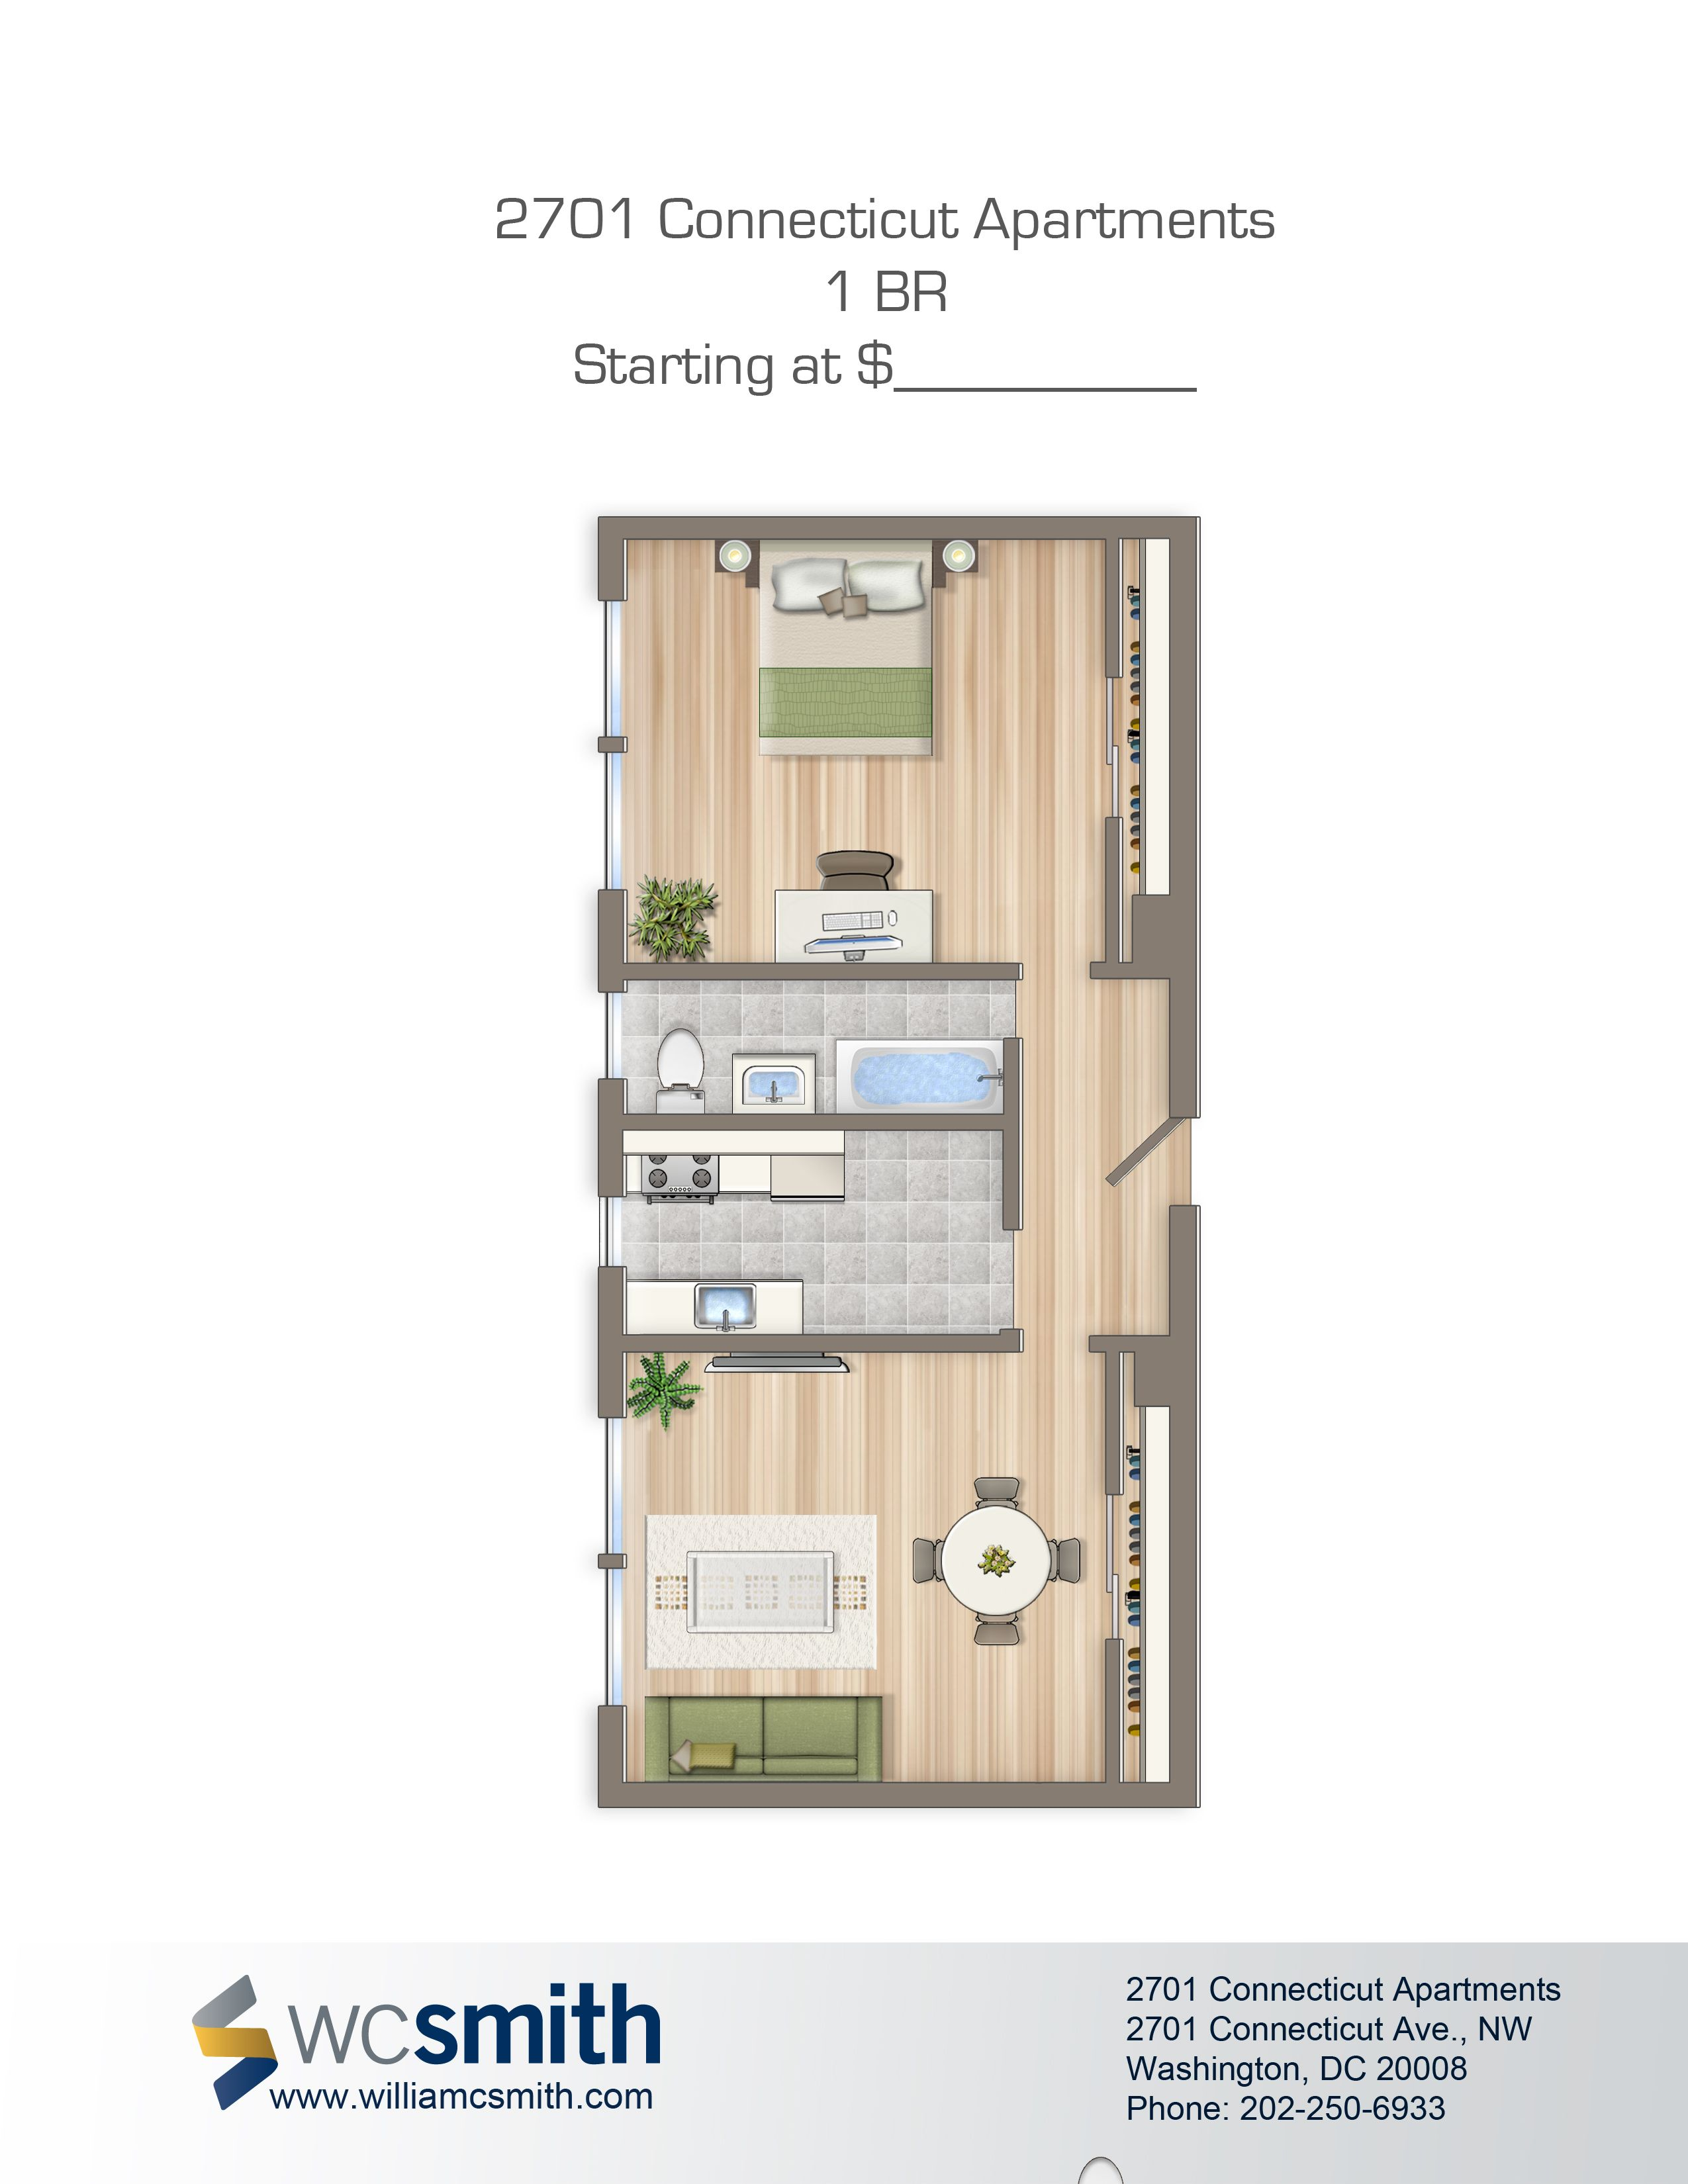 2701 Conn Ave N W Wc Smith Apartment Floor Plans Apartment Layout Small House Floor Plans